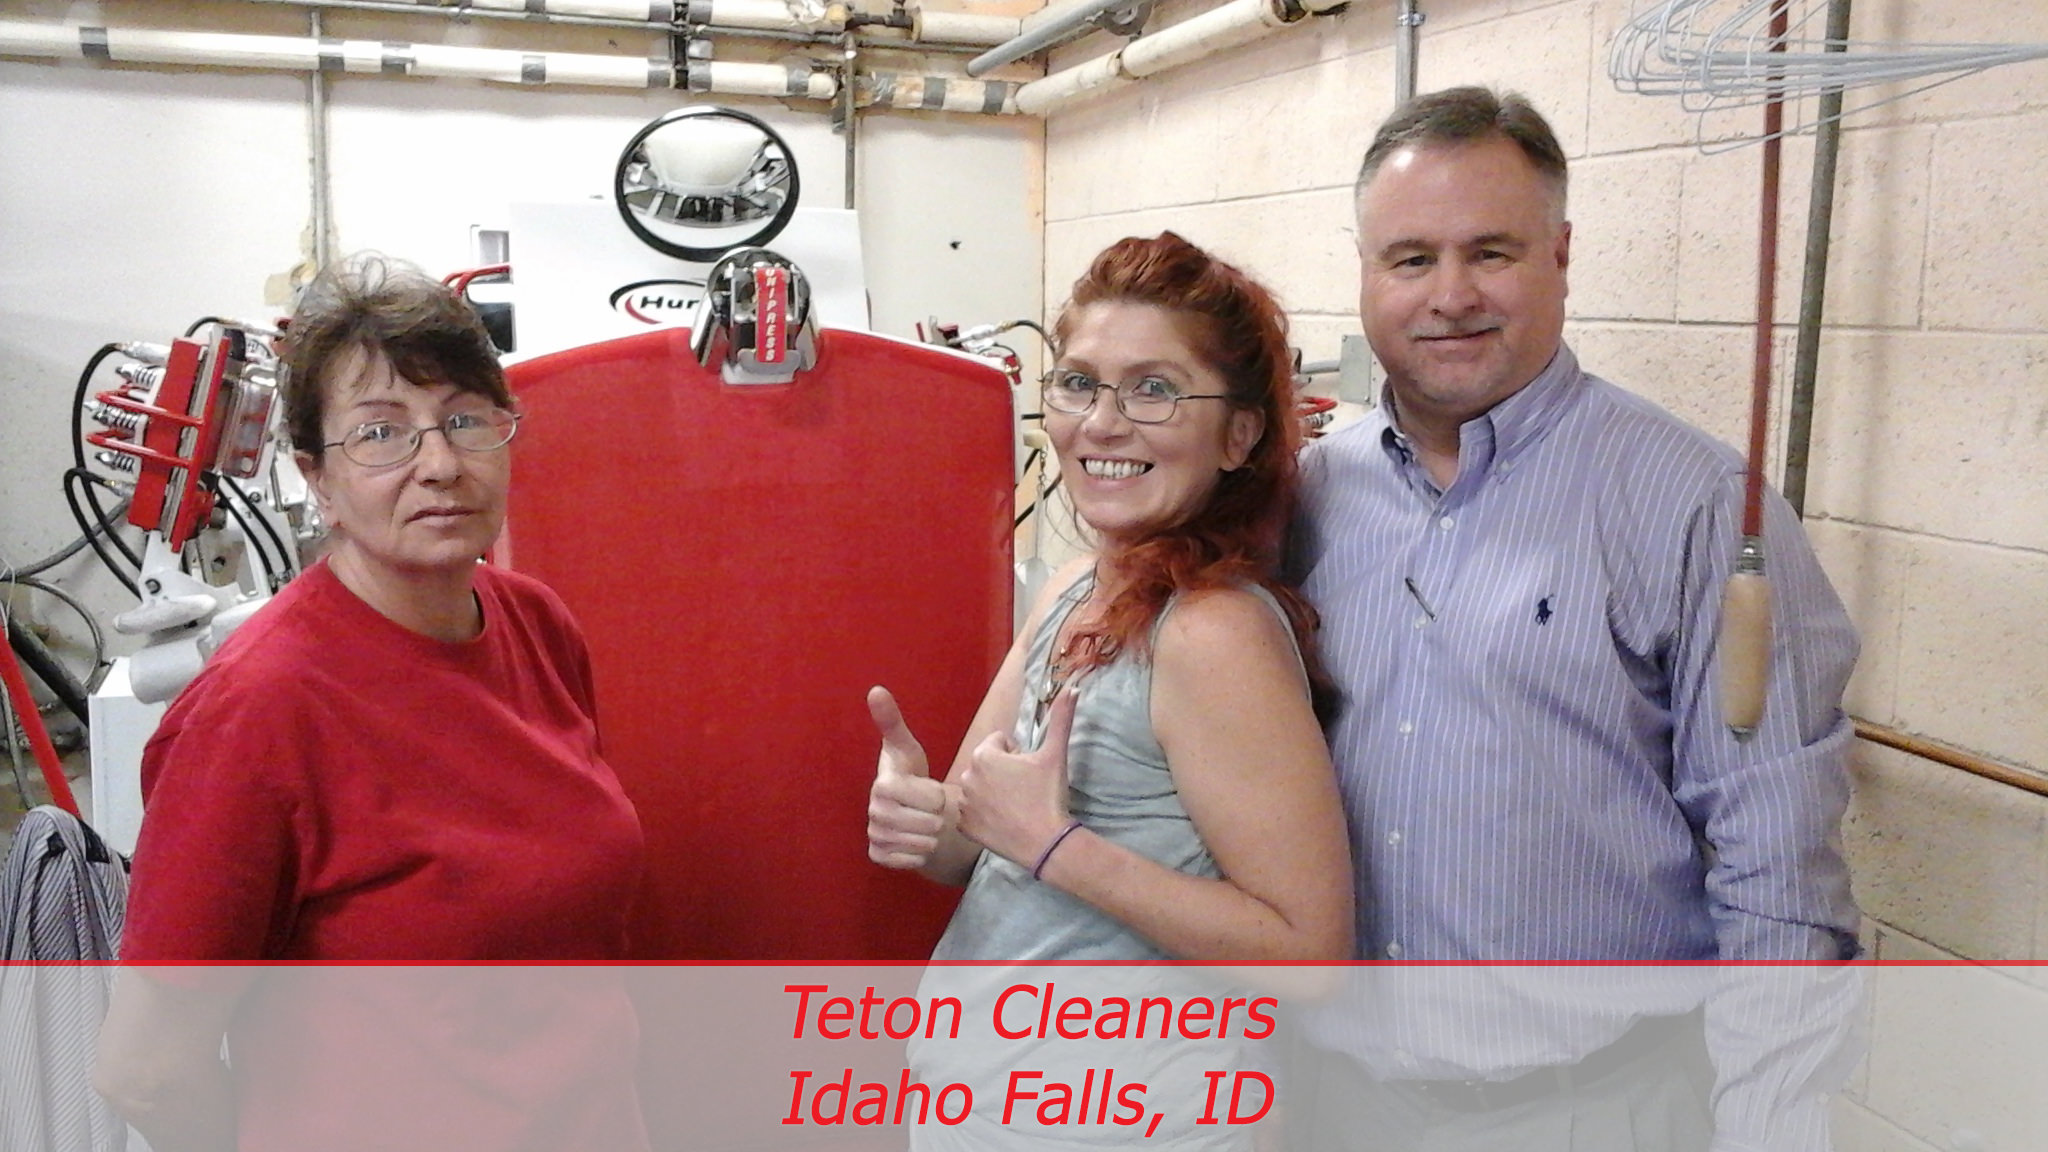 Teton Cleaners